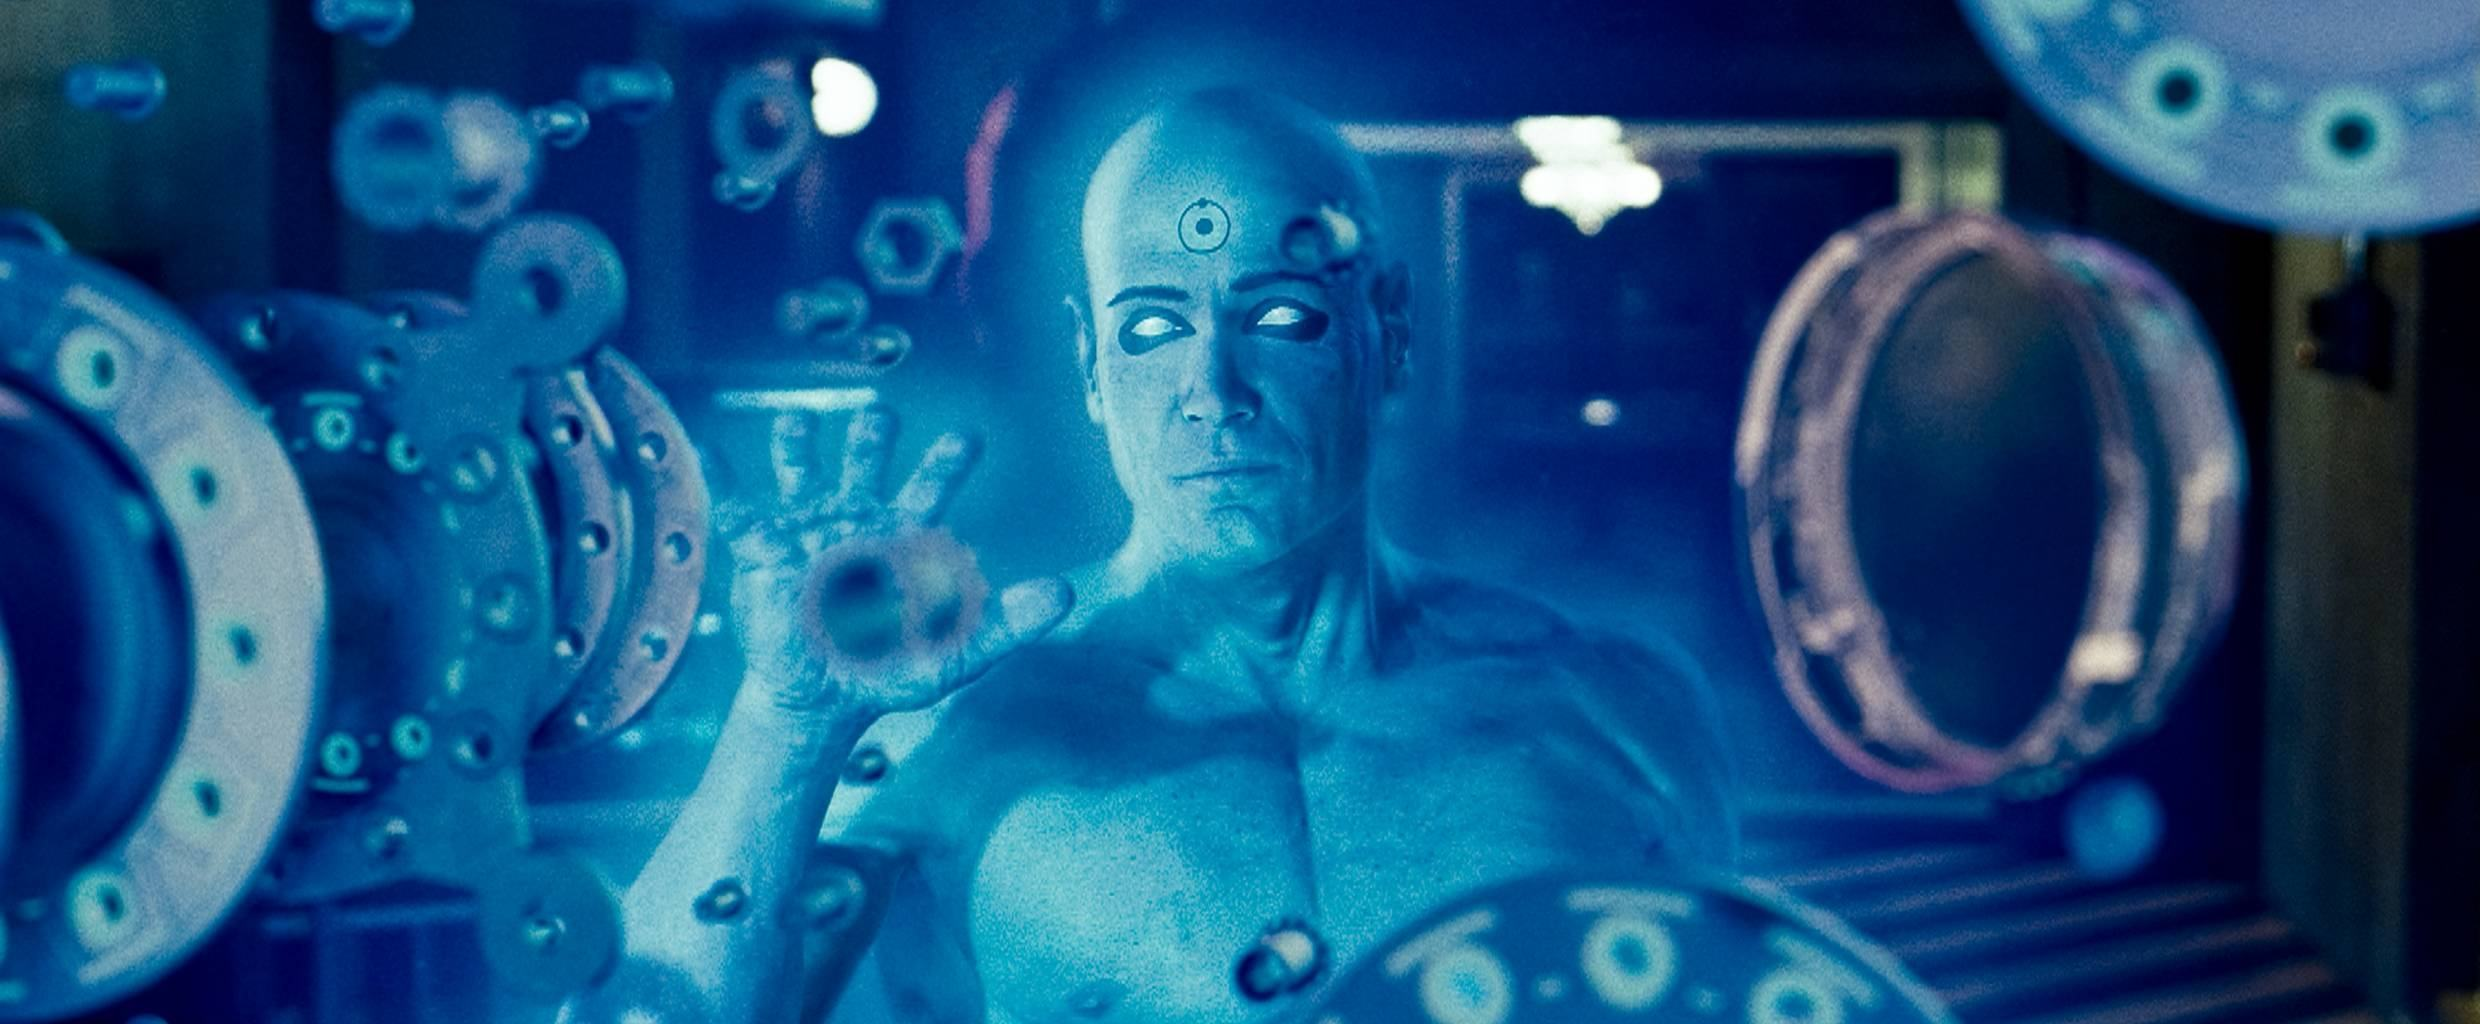 BILLY CRUDUP as Dr. Manhattan in Warner Bros. PicturesÕ, Paramount PicturesÕ and Legendary PicturesÕ ÒWatchmen,Ó distributed by Warner Bros. Pictures. PHOTOGRAPHS TO BE USED SOLELY FOR ADVERTISING, PROMOTION, PUBLICITY OR REVIEWS OF THIS SPECIFIC MOTION PICTURE AND TO REMAIN THE PROPERTY OF THE STUDIO. NOT FOR SALE OR REDISTRIBUTION.